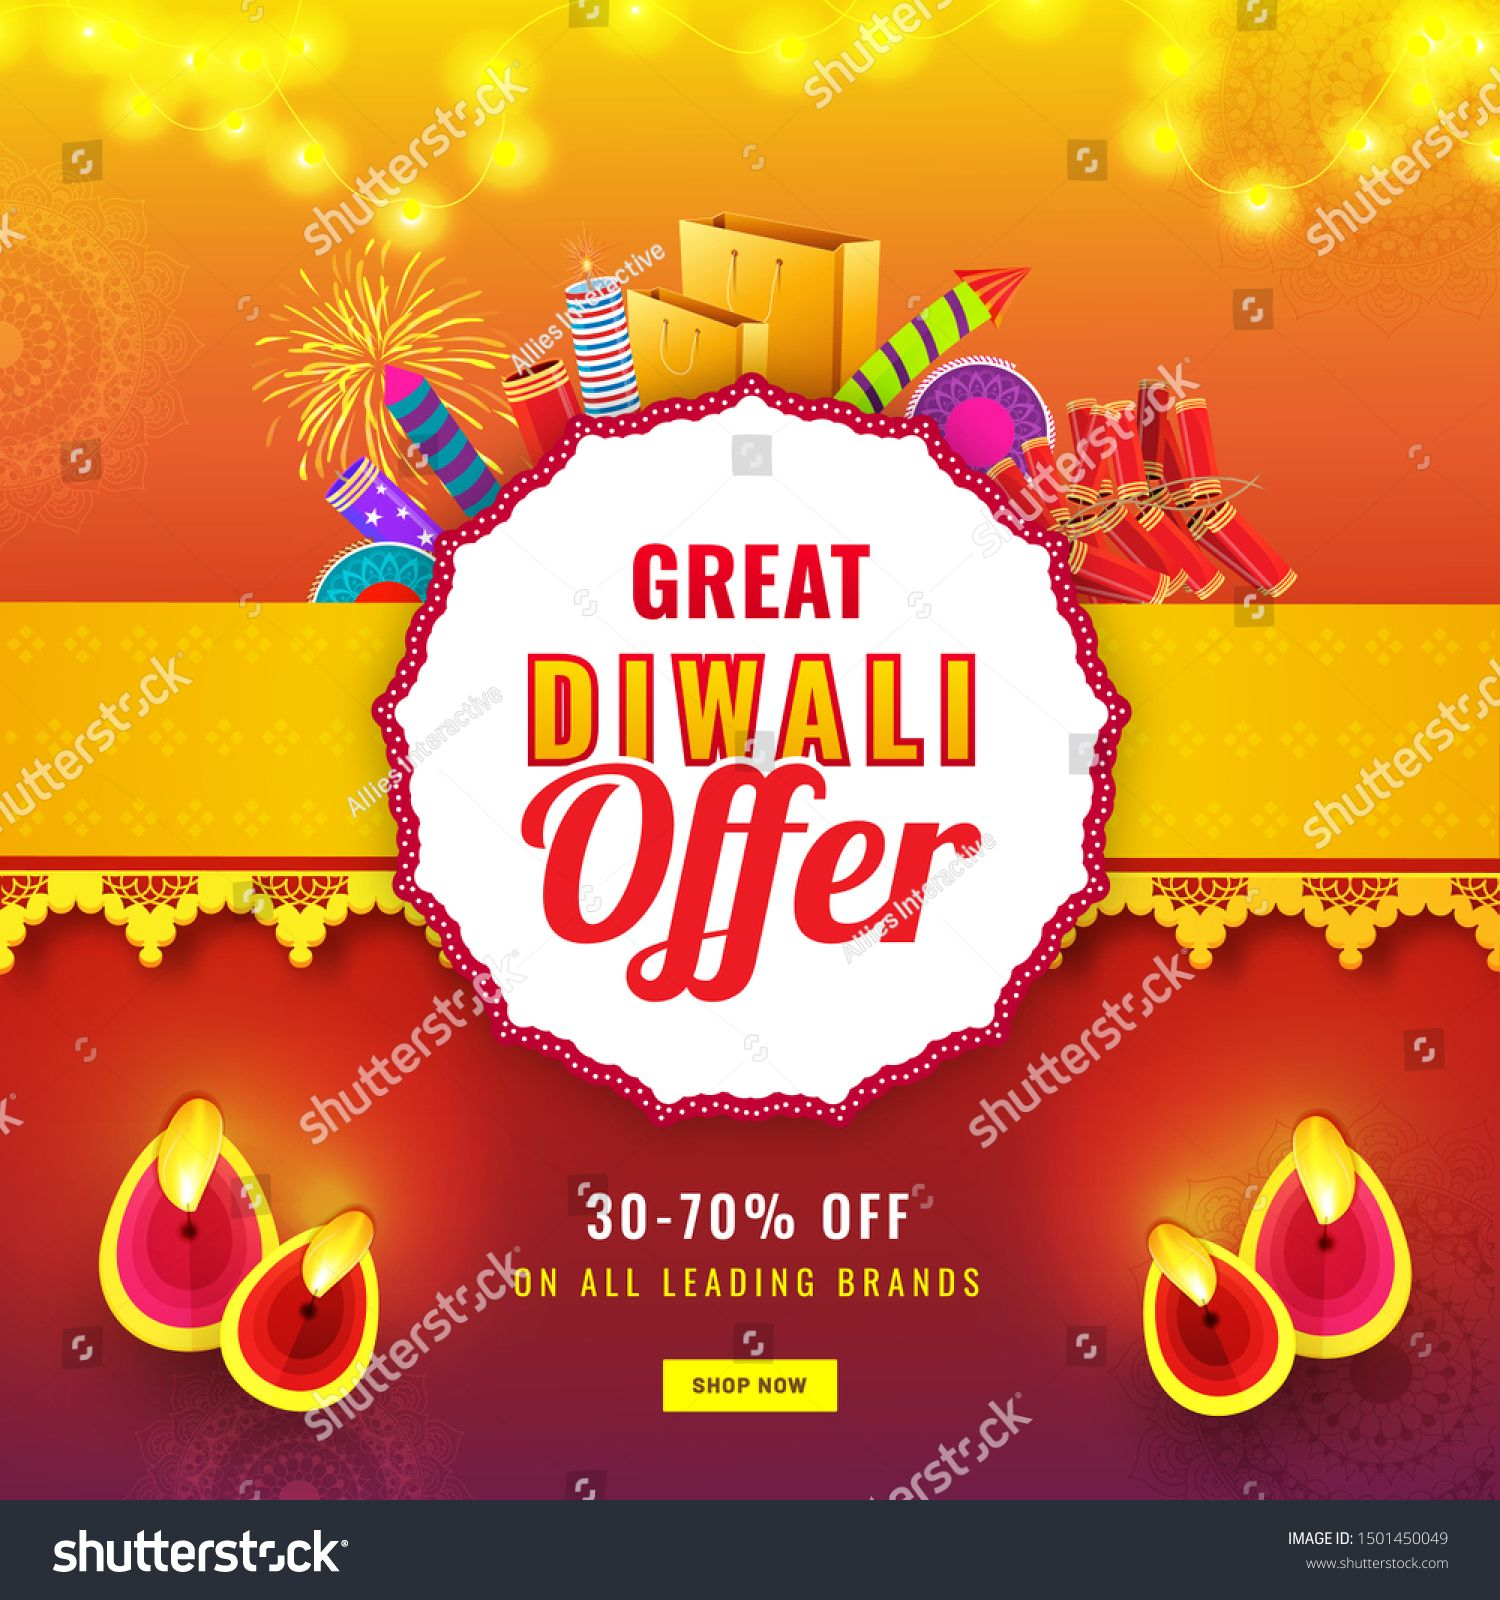 Diwali Sale poster or template design with 3070 discount offer firecrackers and illuminated oil lamp Diya on abstract background decorated with lighting garland